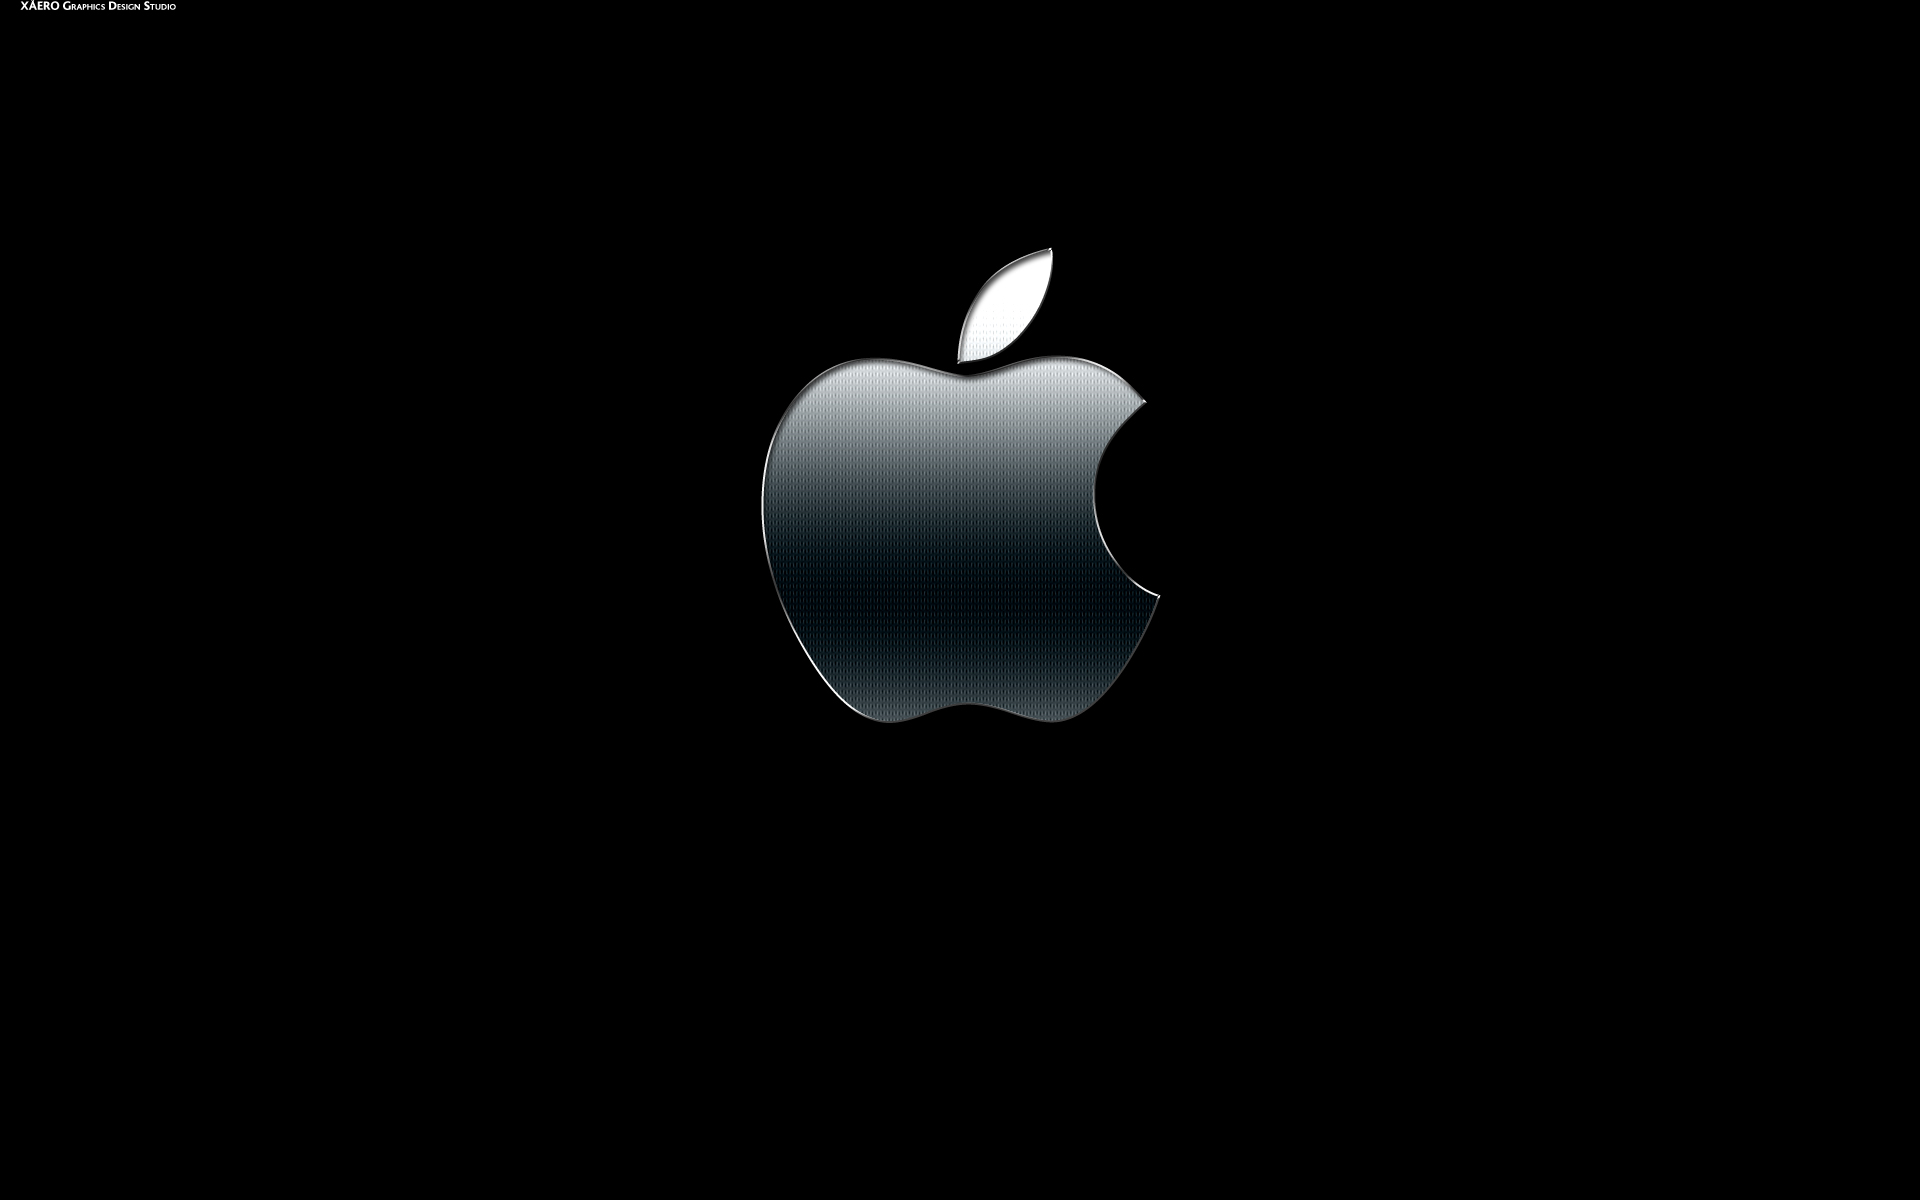 49 ] Apple HD Wallpaper Downloads Free On WallpaperSafari